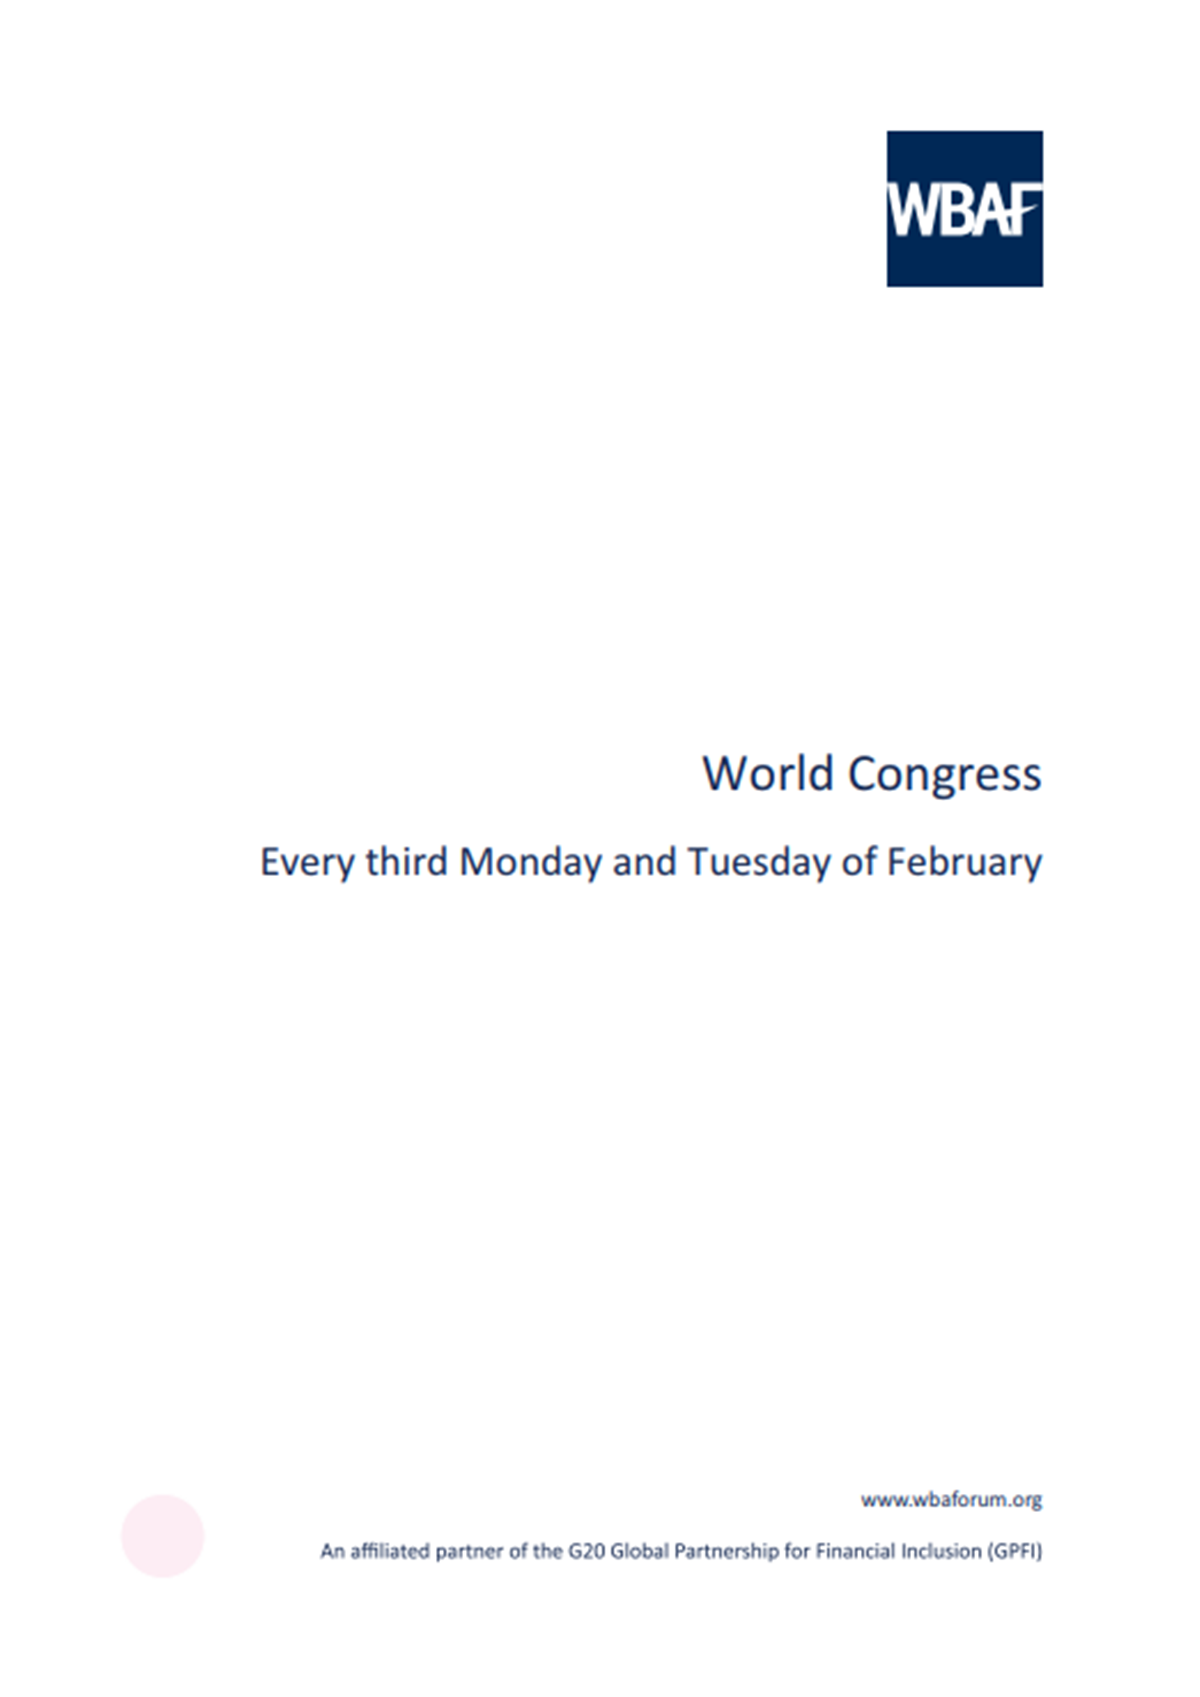 Word Congress - Every third Monday and Tuesday of February